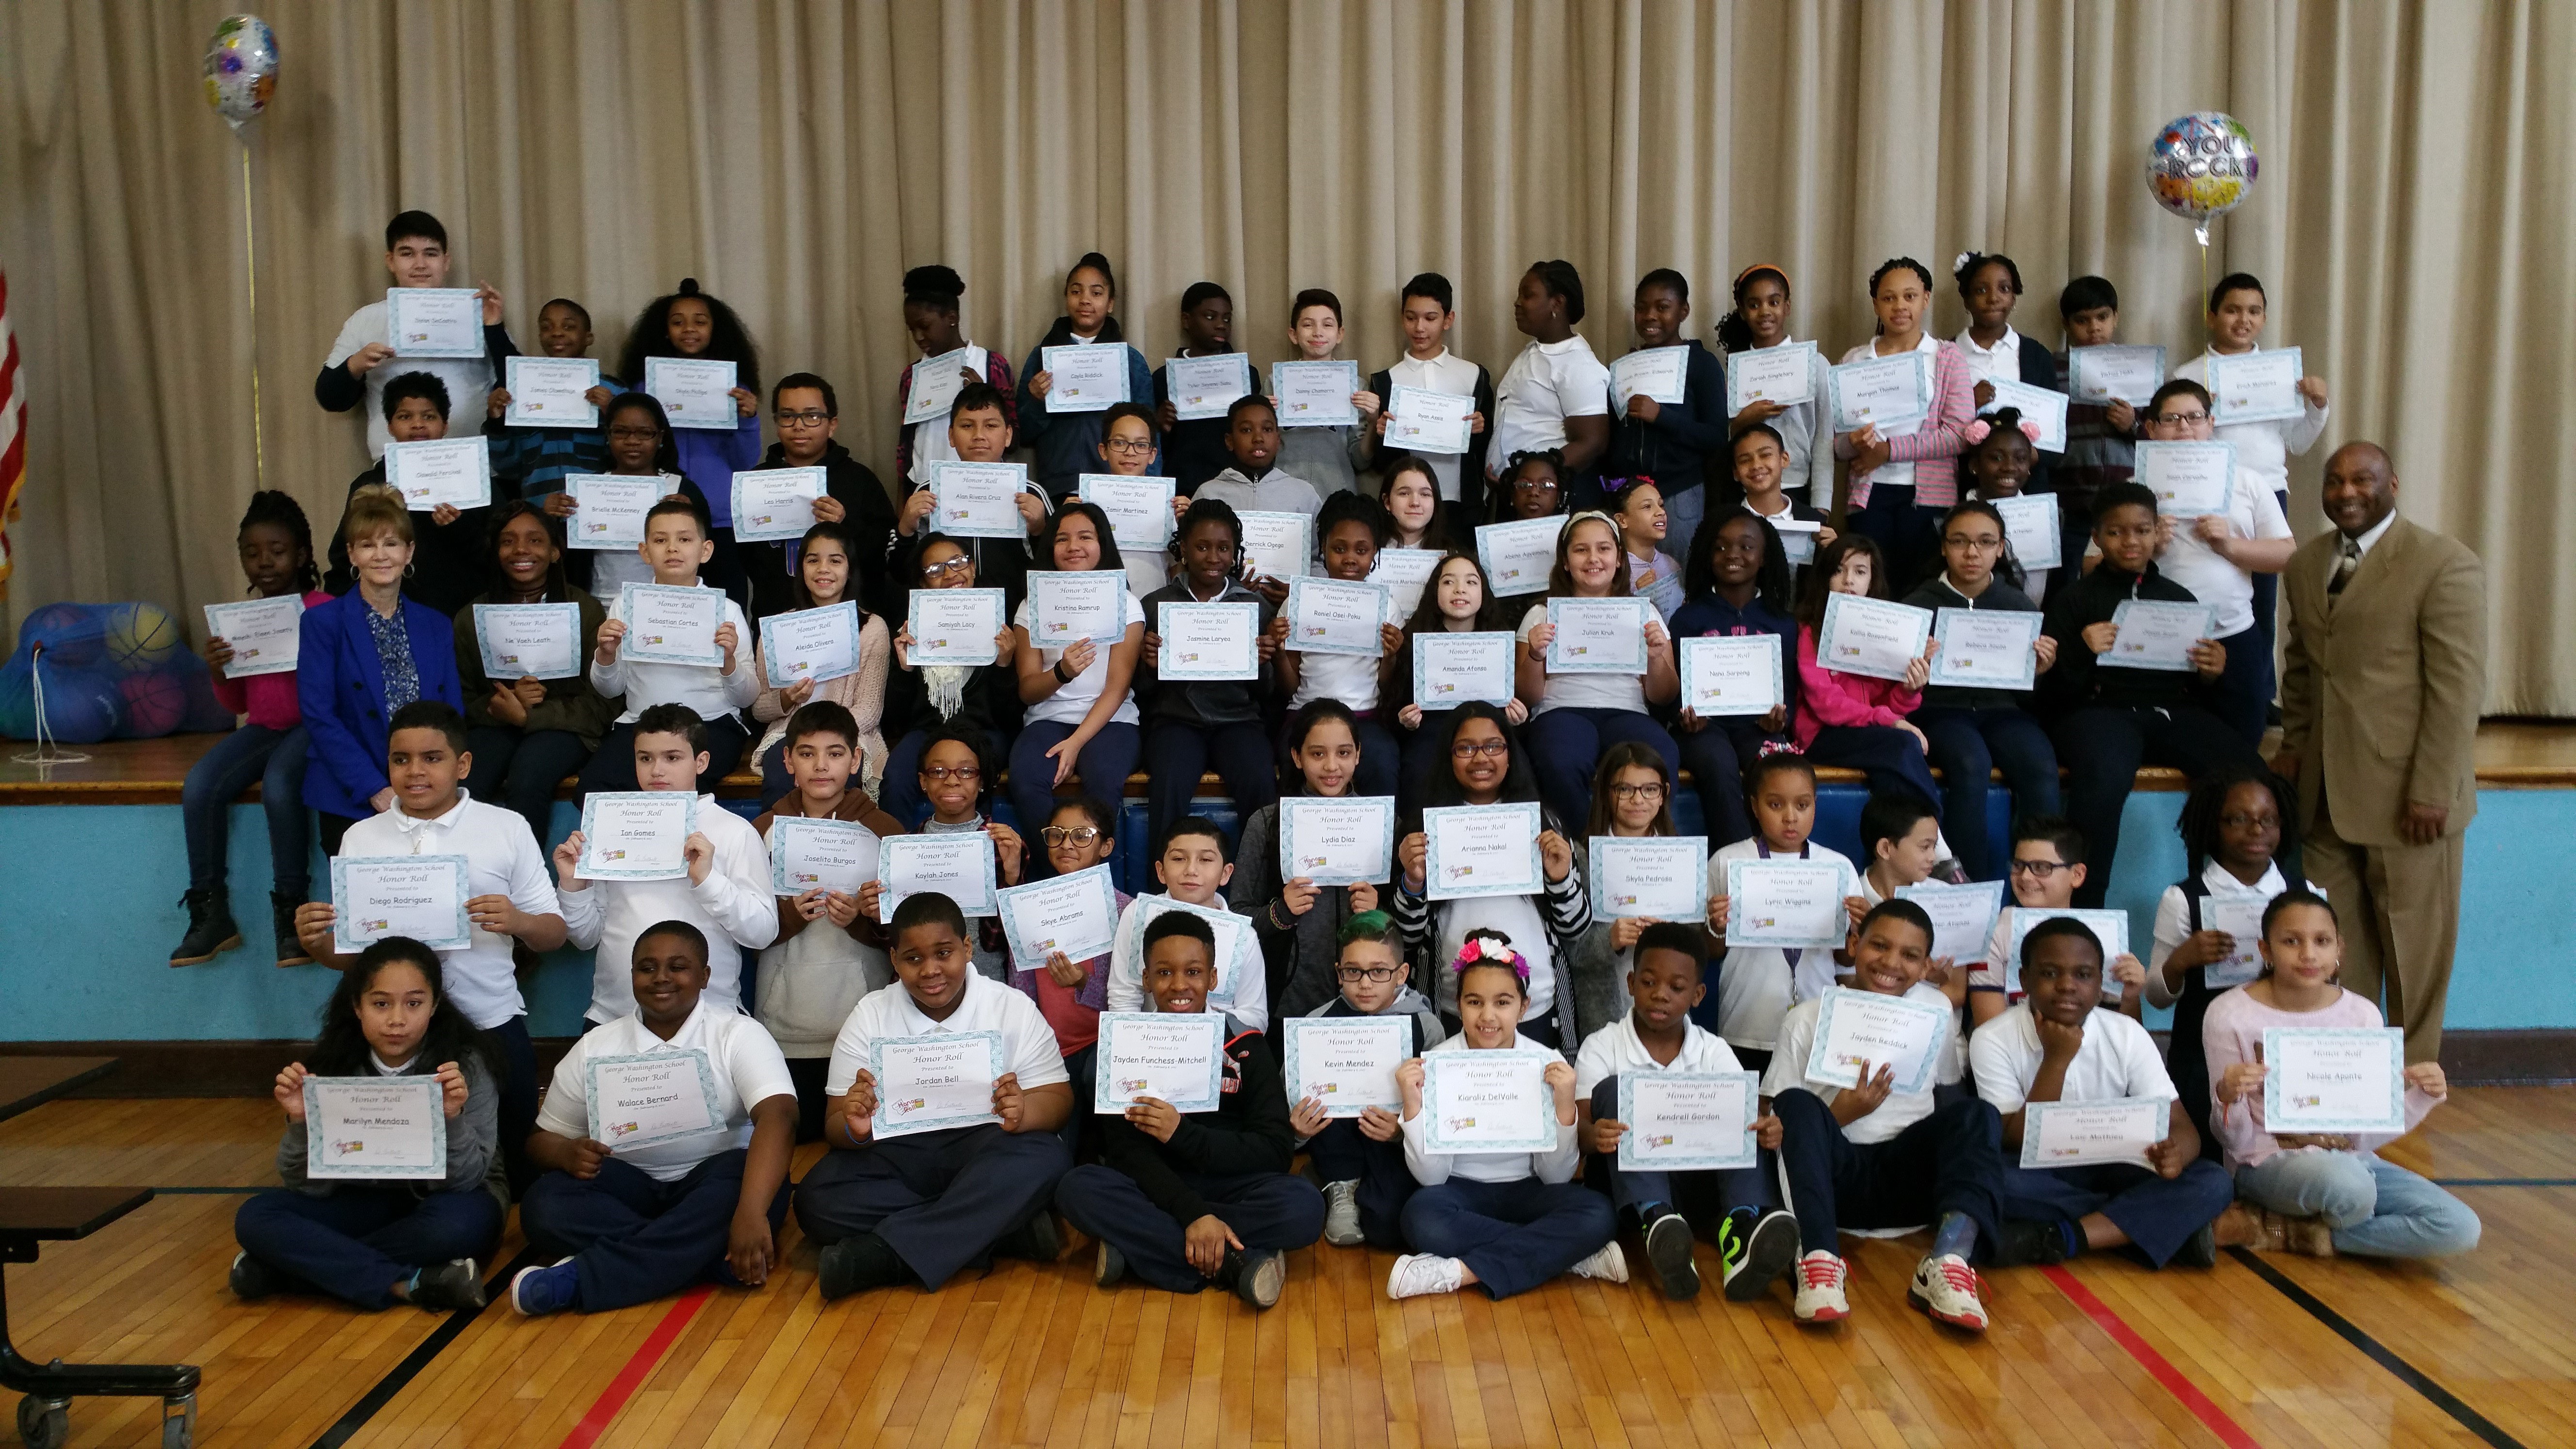 George Washington School celebrates 70 Honor Roll students for Marking Period 2.